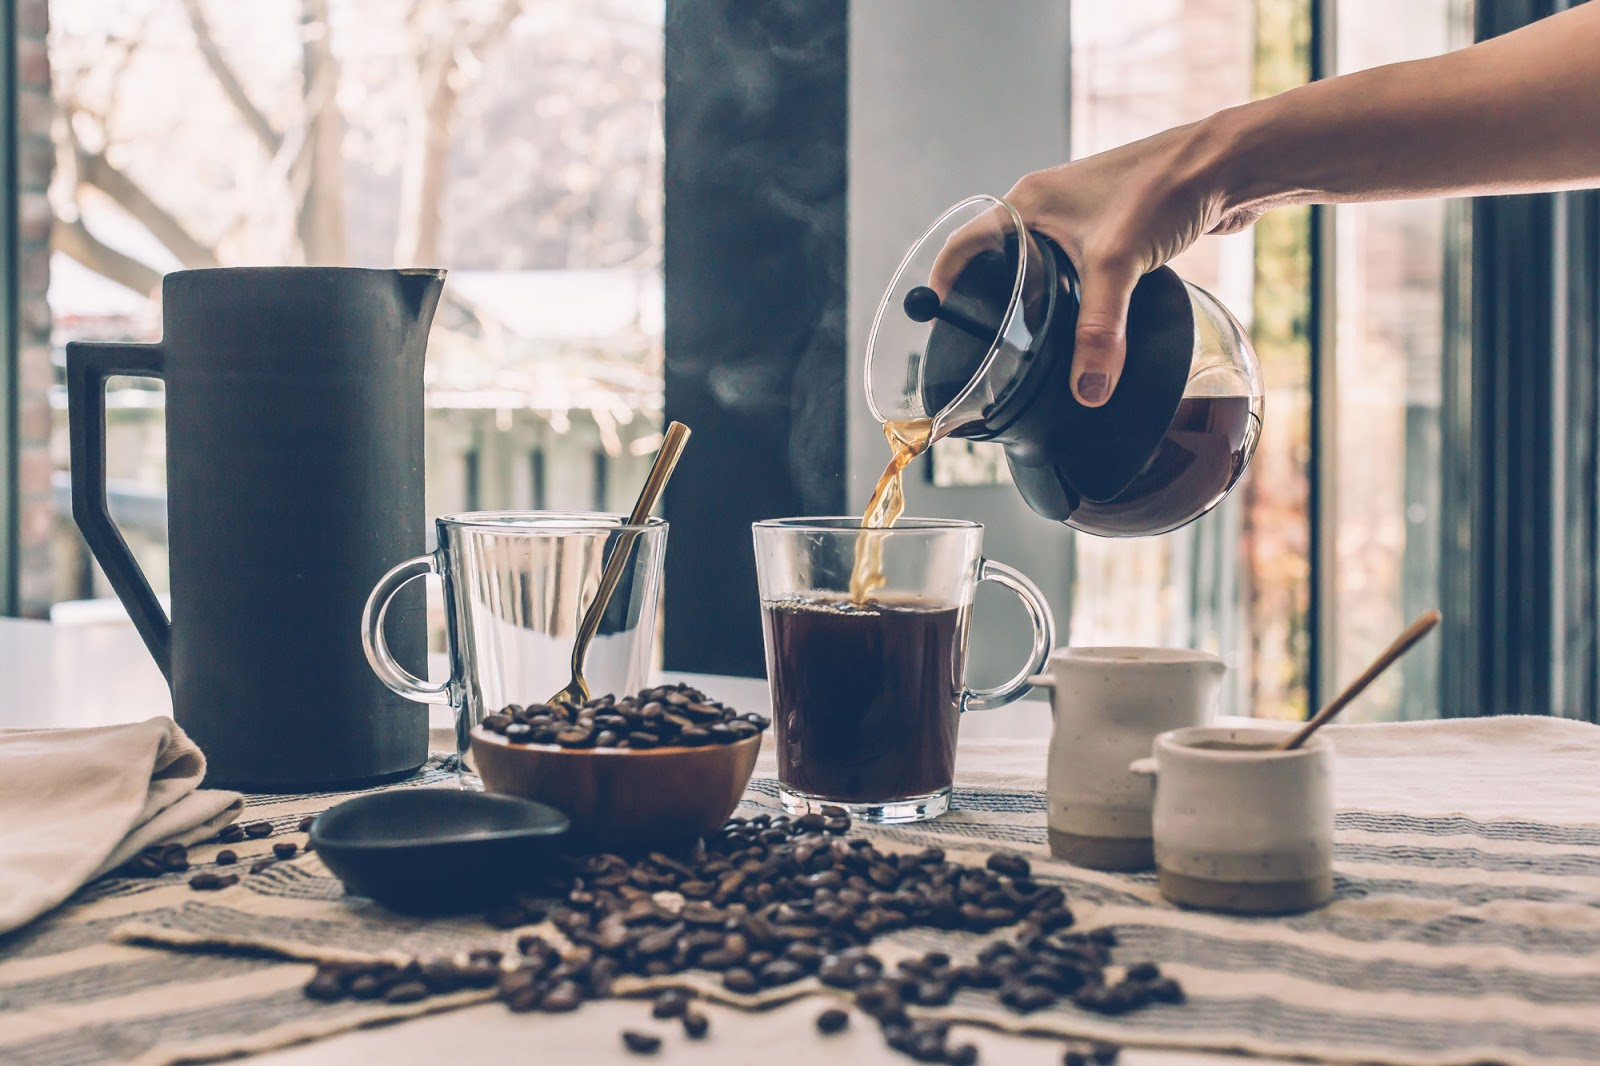 Pouring black coffee into a cup